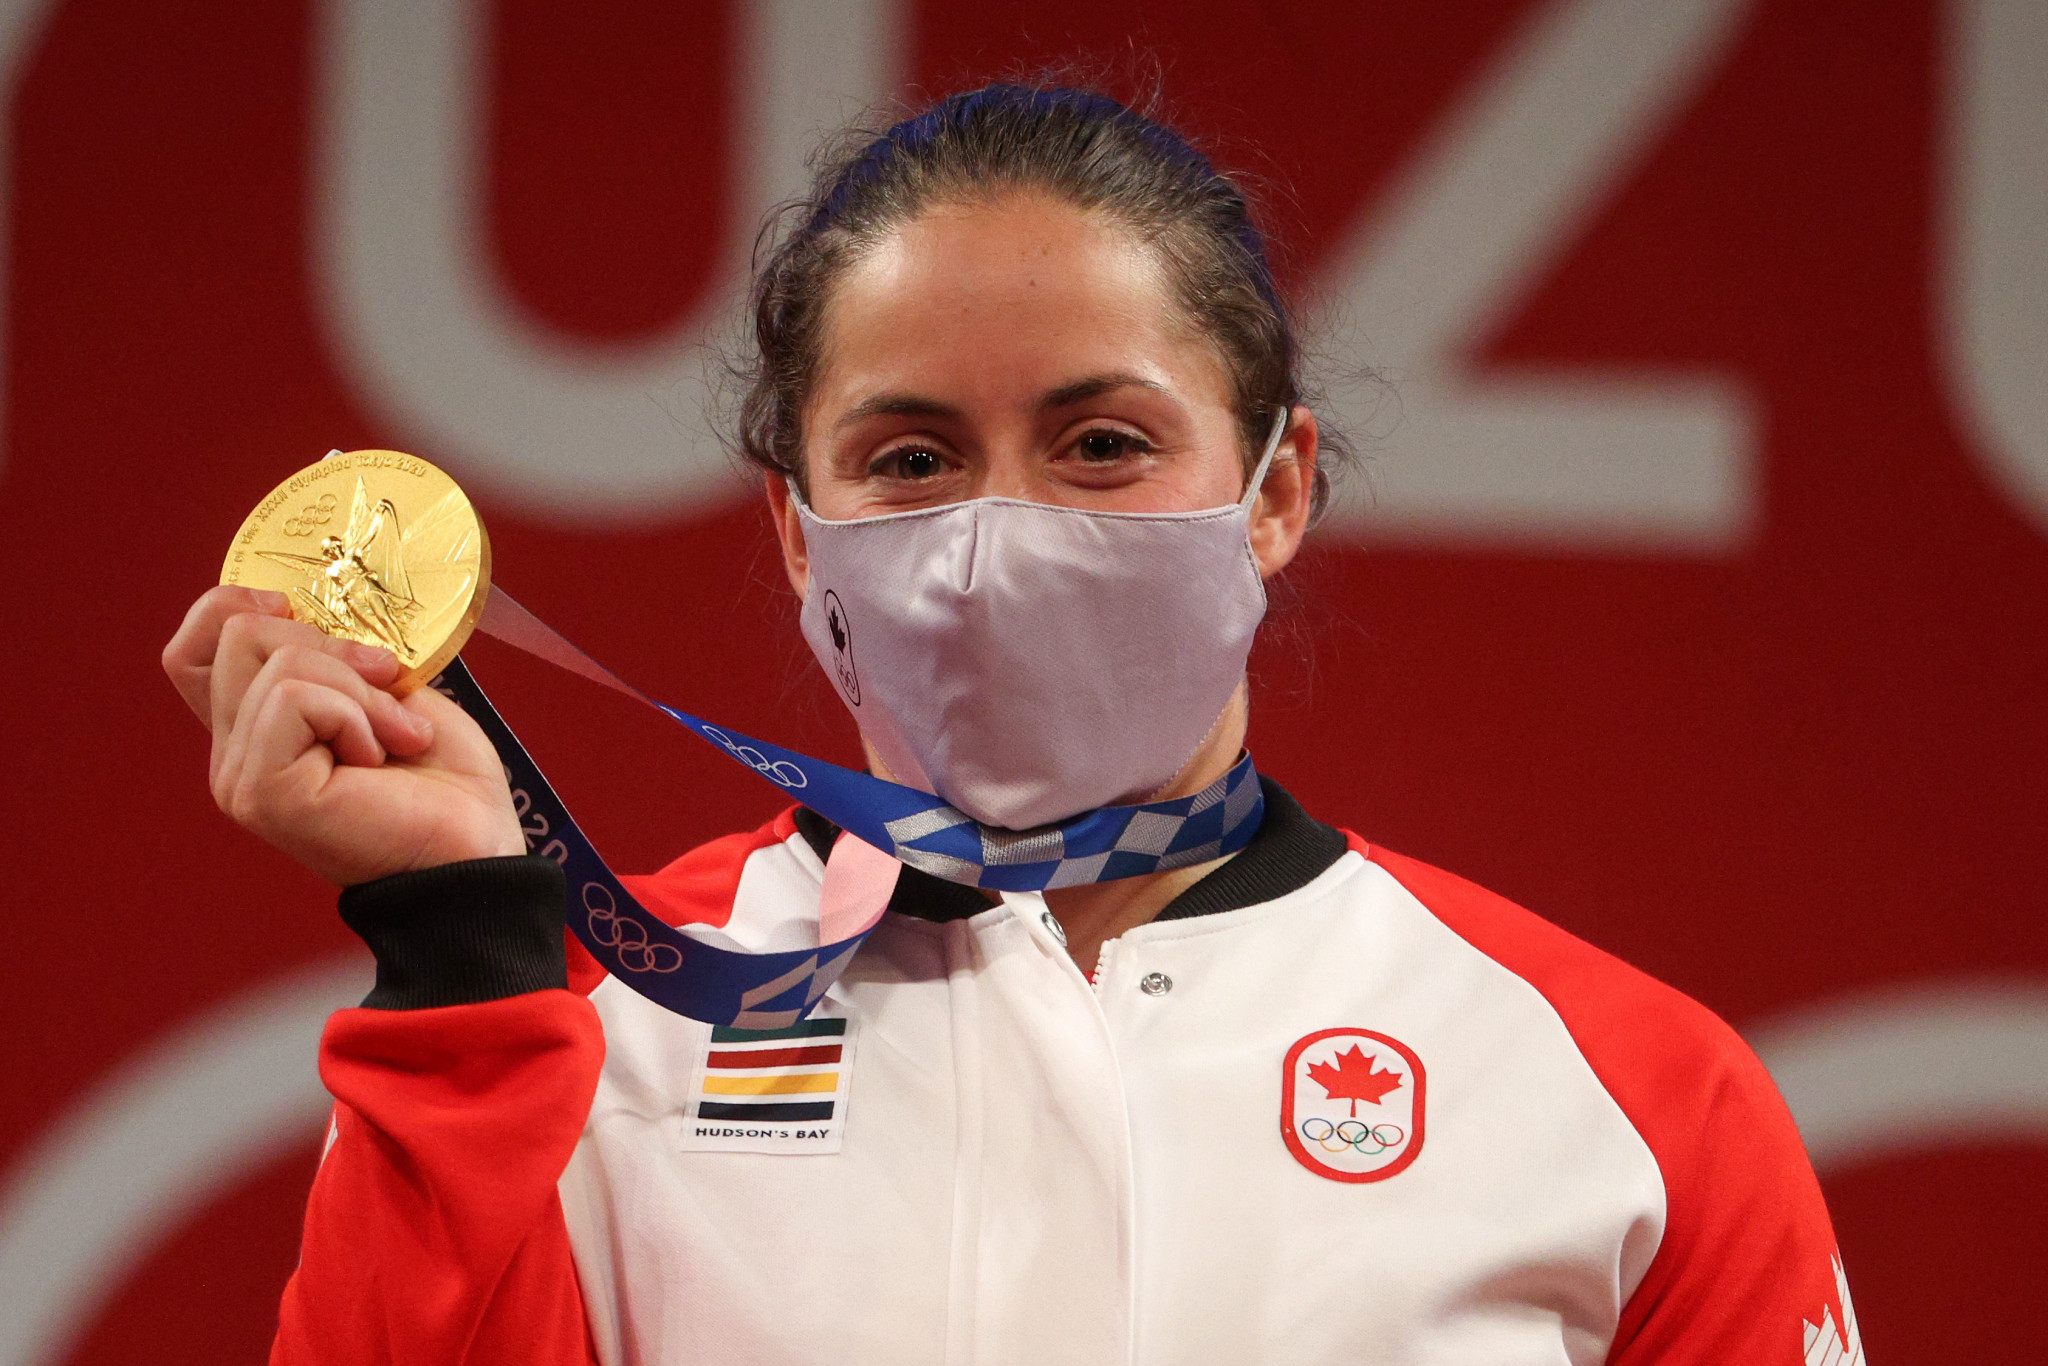 She should be a police officer now - instead Charron is an Olympic weightlifting champion